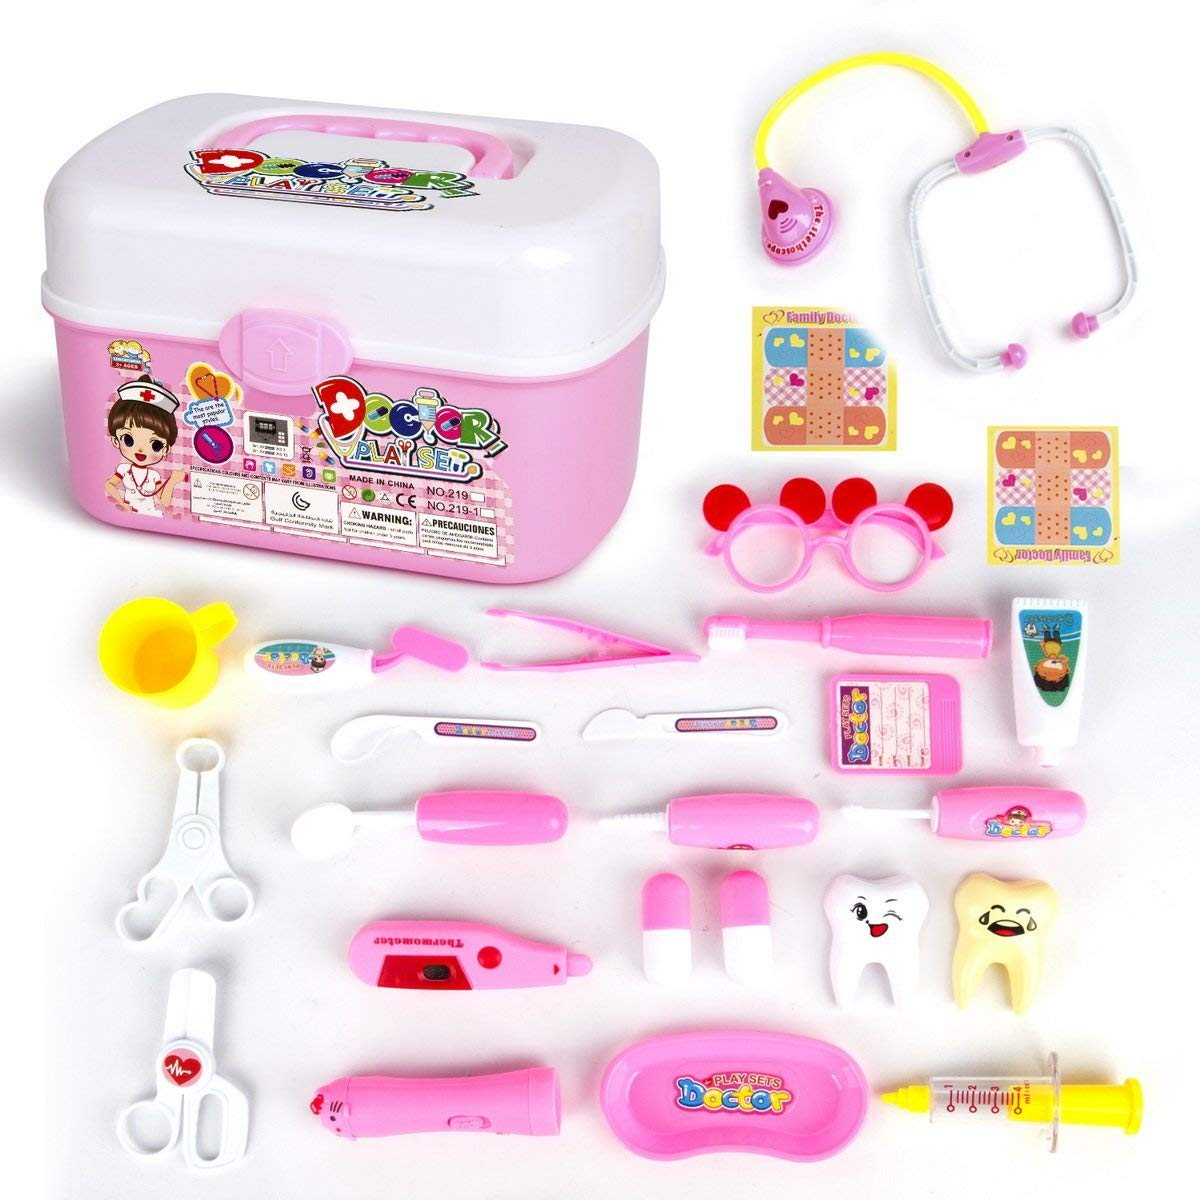 Doctor Kit for Kids 24Pcs Pretend Play Doctor Medical Kit Toys for Kids-Boy&Girl's Holiday Gifts Pink By OIKA